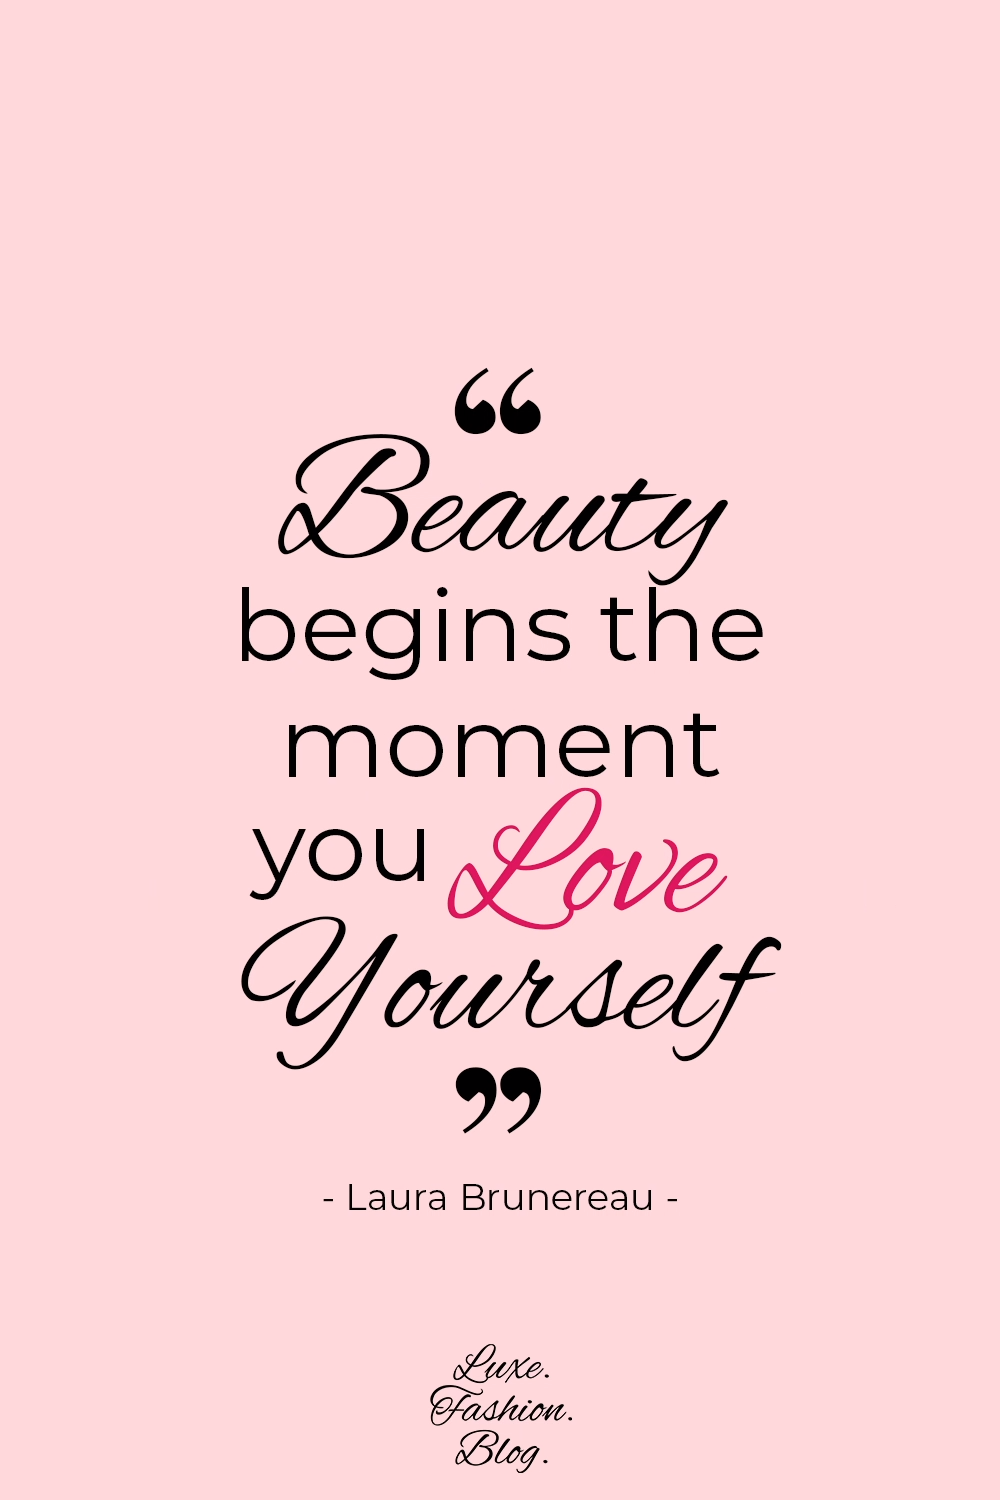 Love for Fashion Quotes - Valentines Day   Quotes Self Love   Love Clothes Quotes   Quotes Fashion